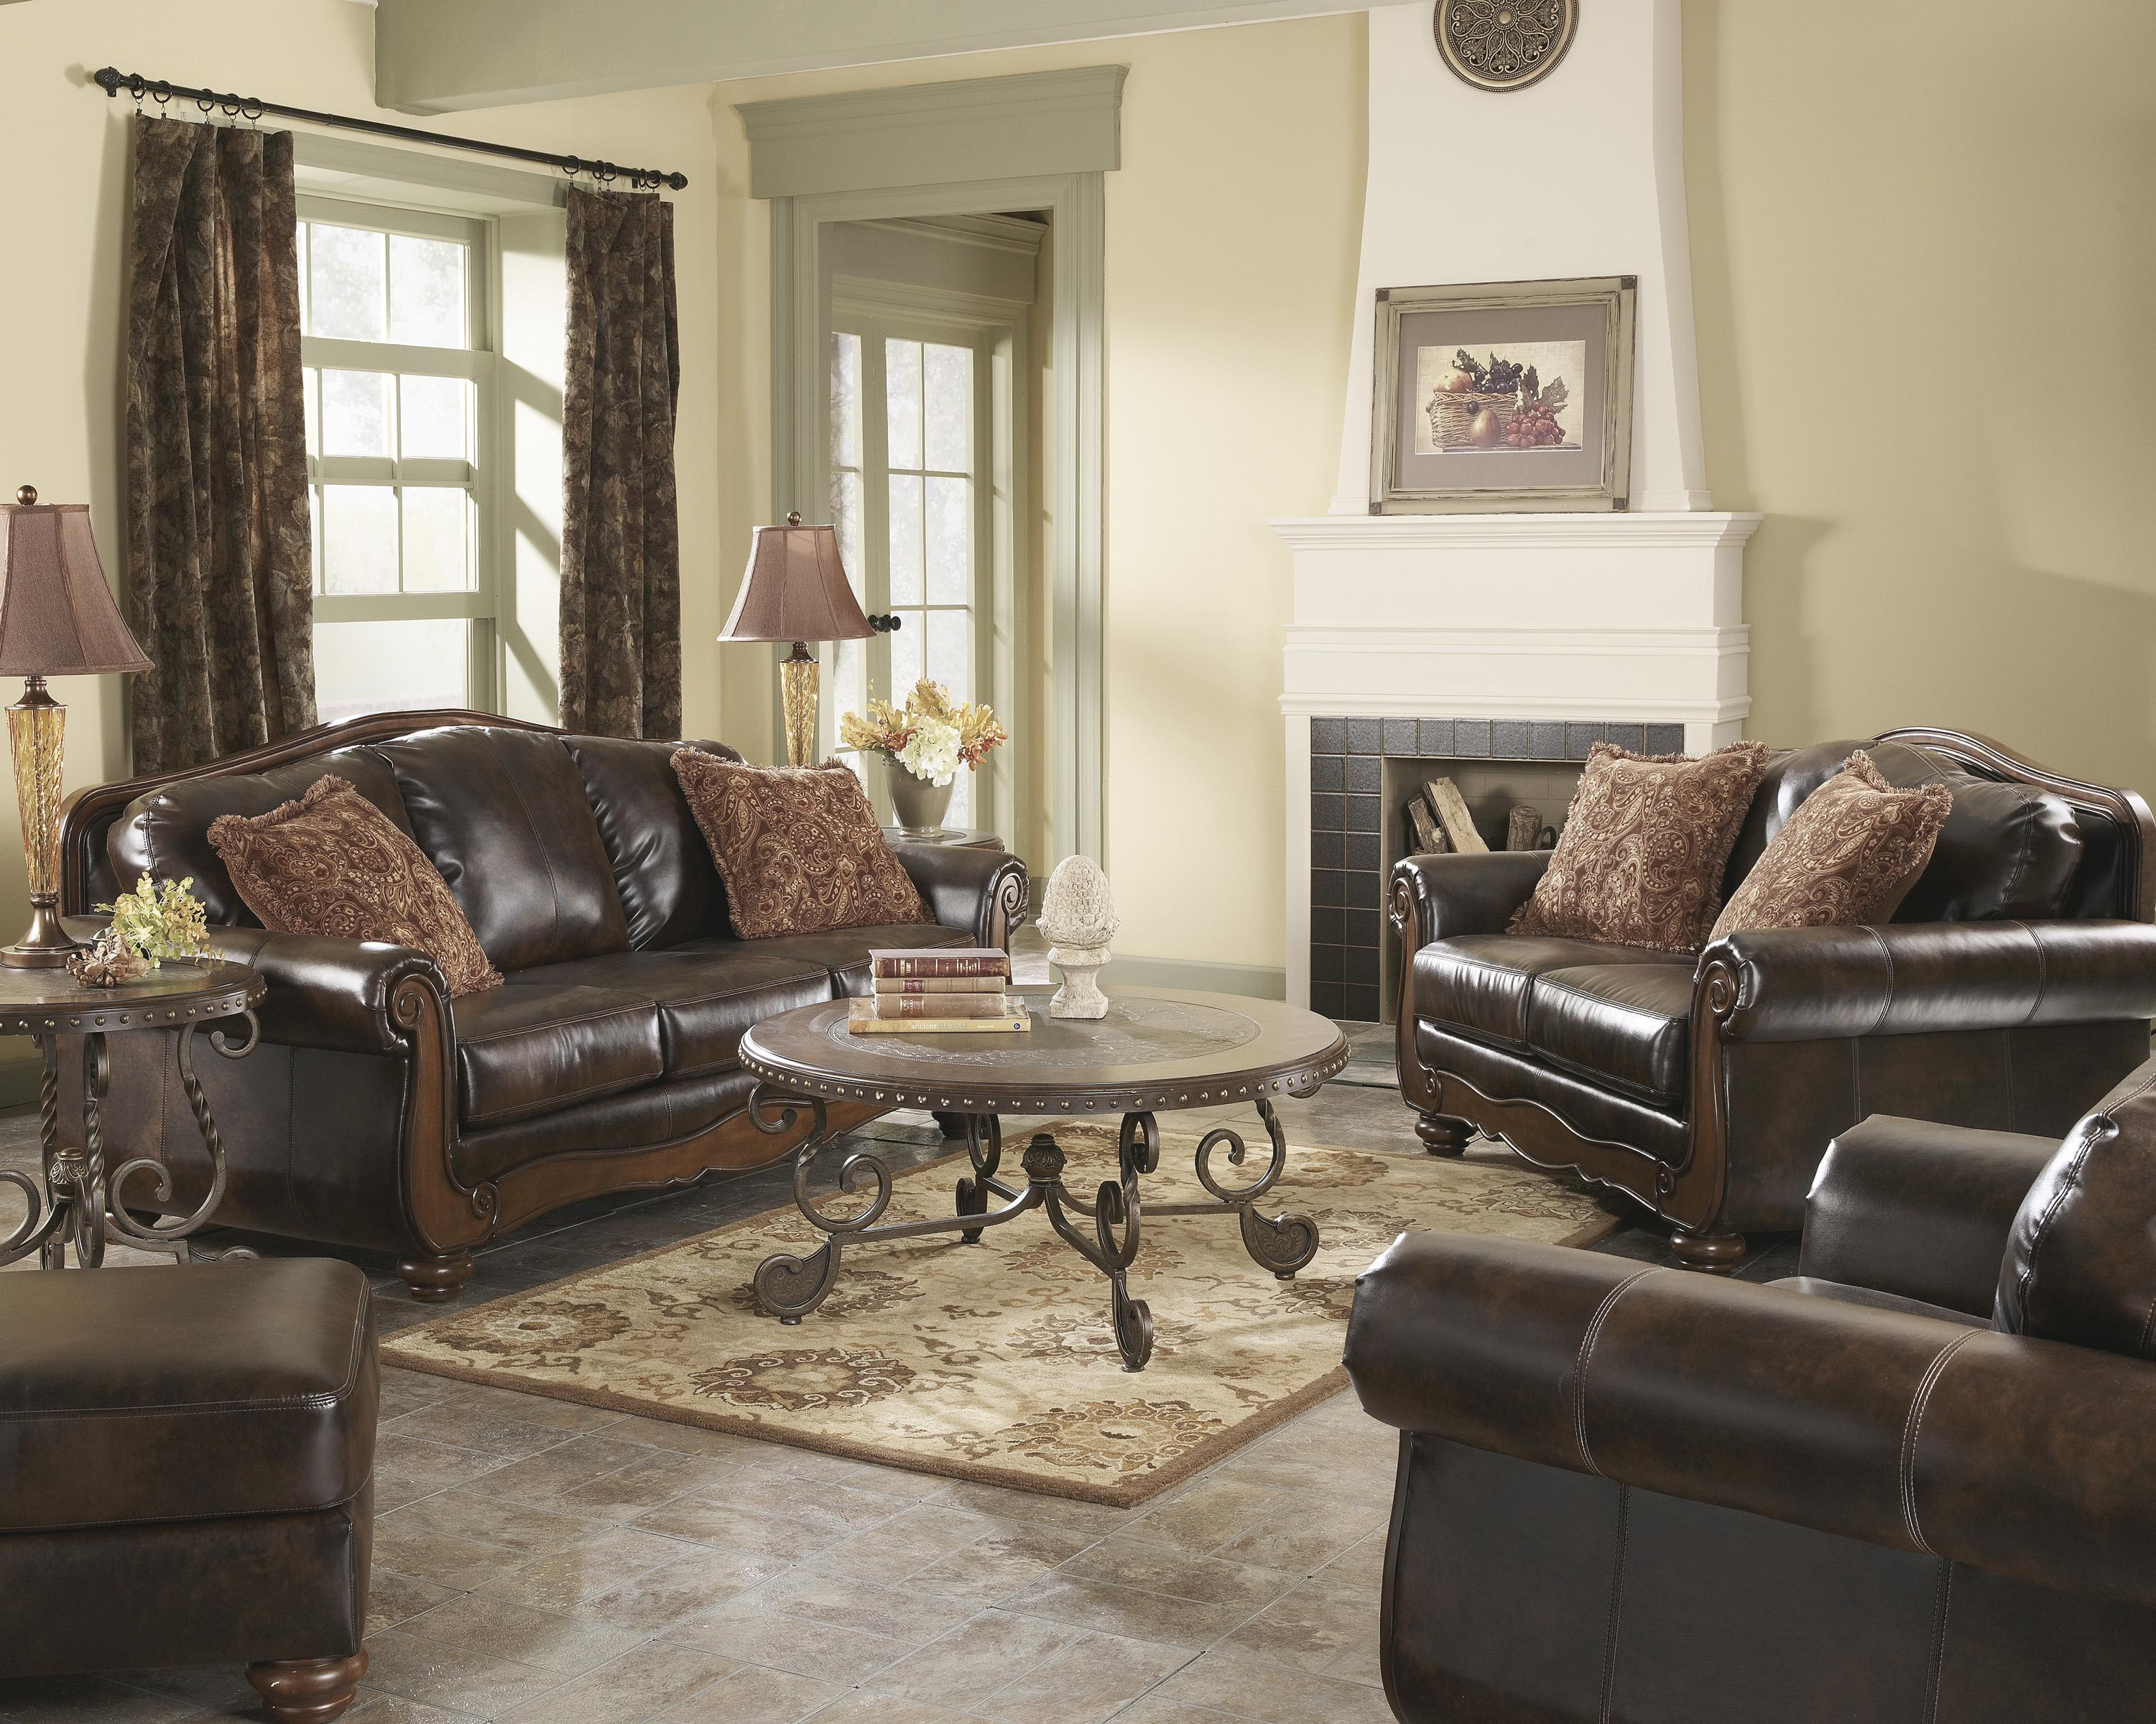 Signature Design by Ashley Barcelona - Antique Stationary Living Room Group - Item Number: 55300 Living Room Group 2